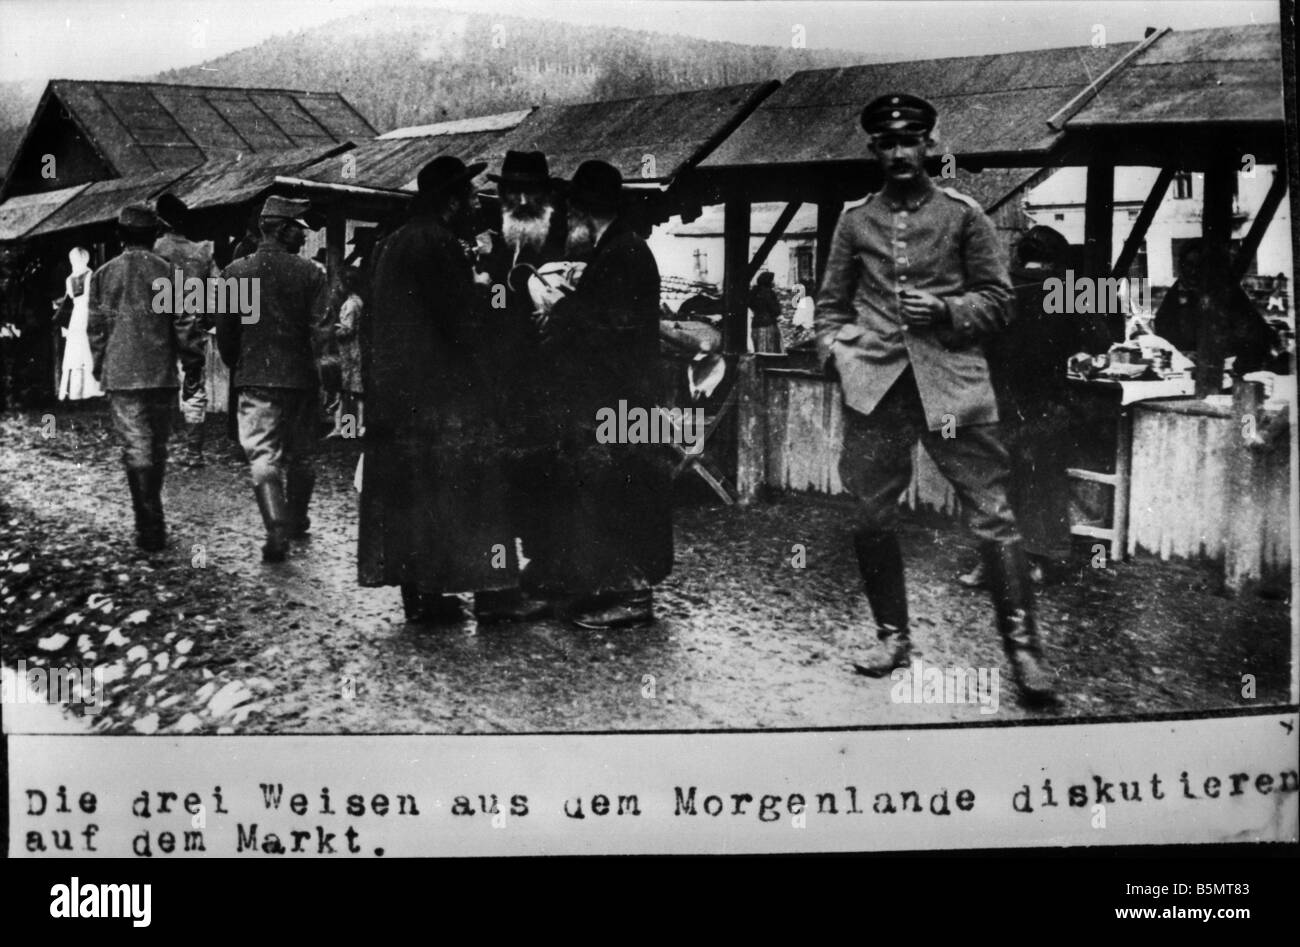 9IS 1915 0 0 A1 44 Jews in Poland at the market Photo 1915 History of Judaism Eastern Jews The three wise men from - Stock Image